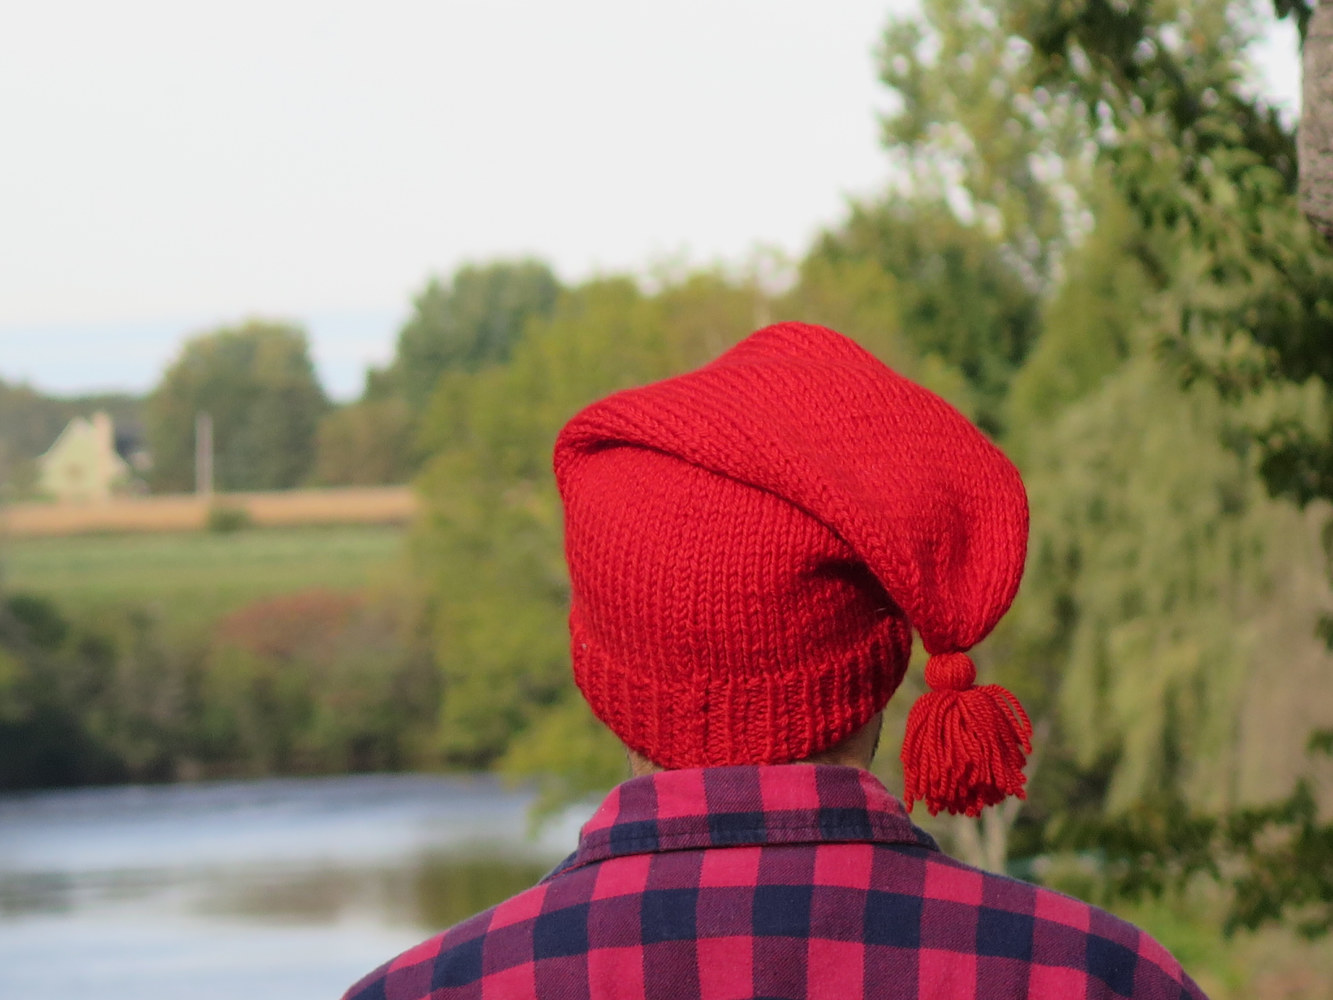 Tuque de patriote pure laine by Genevieve Desy